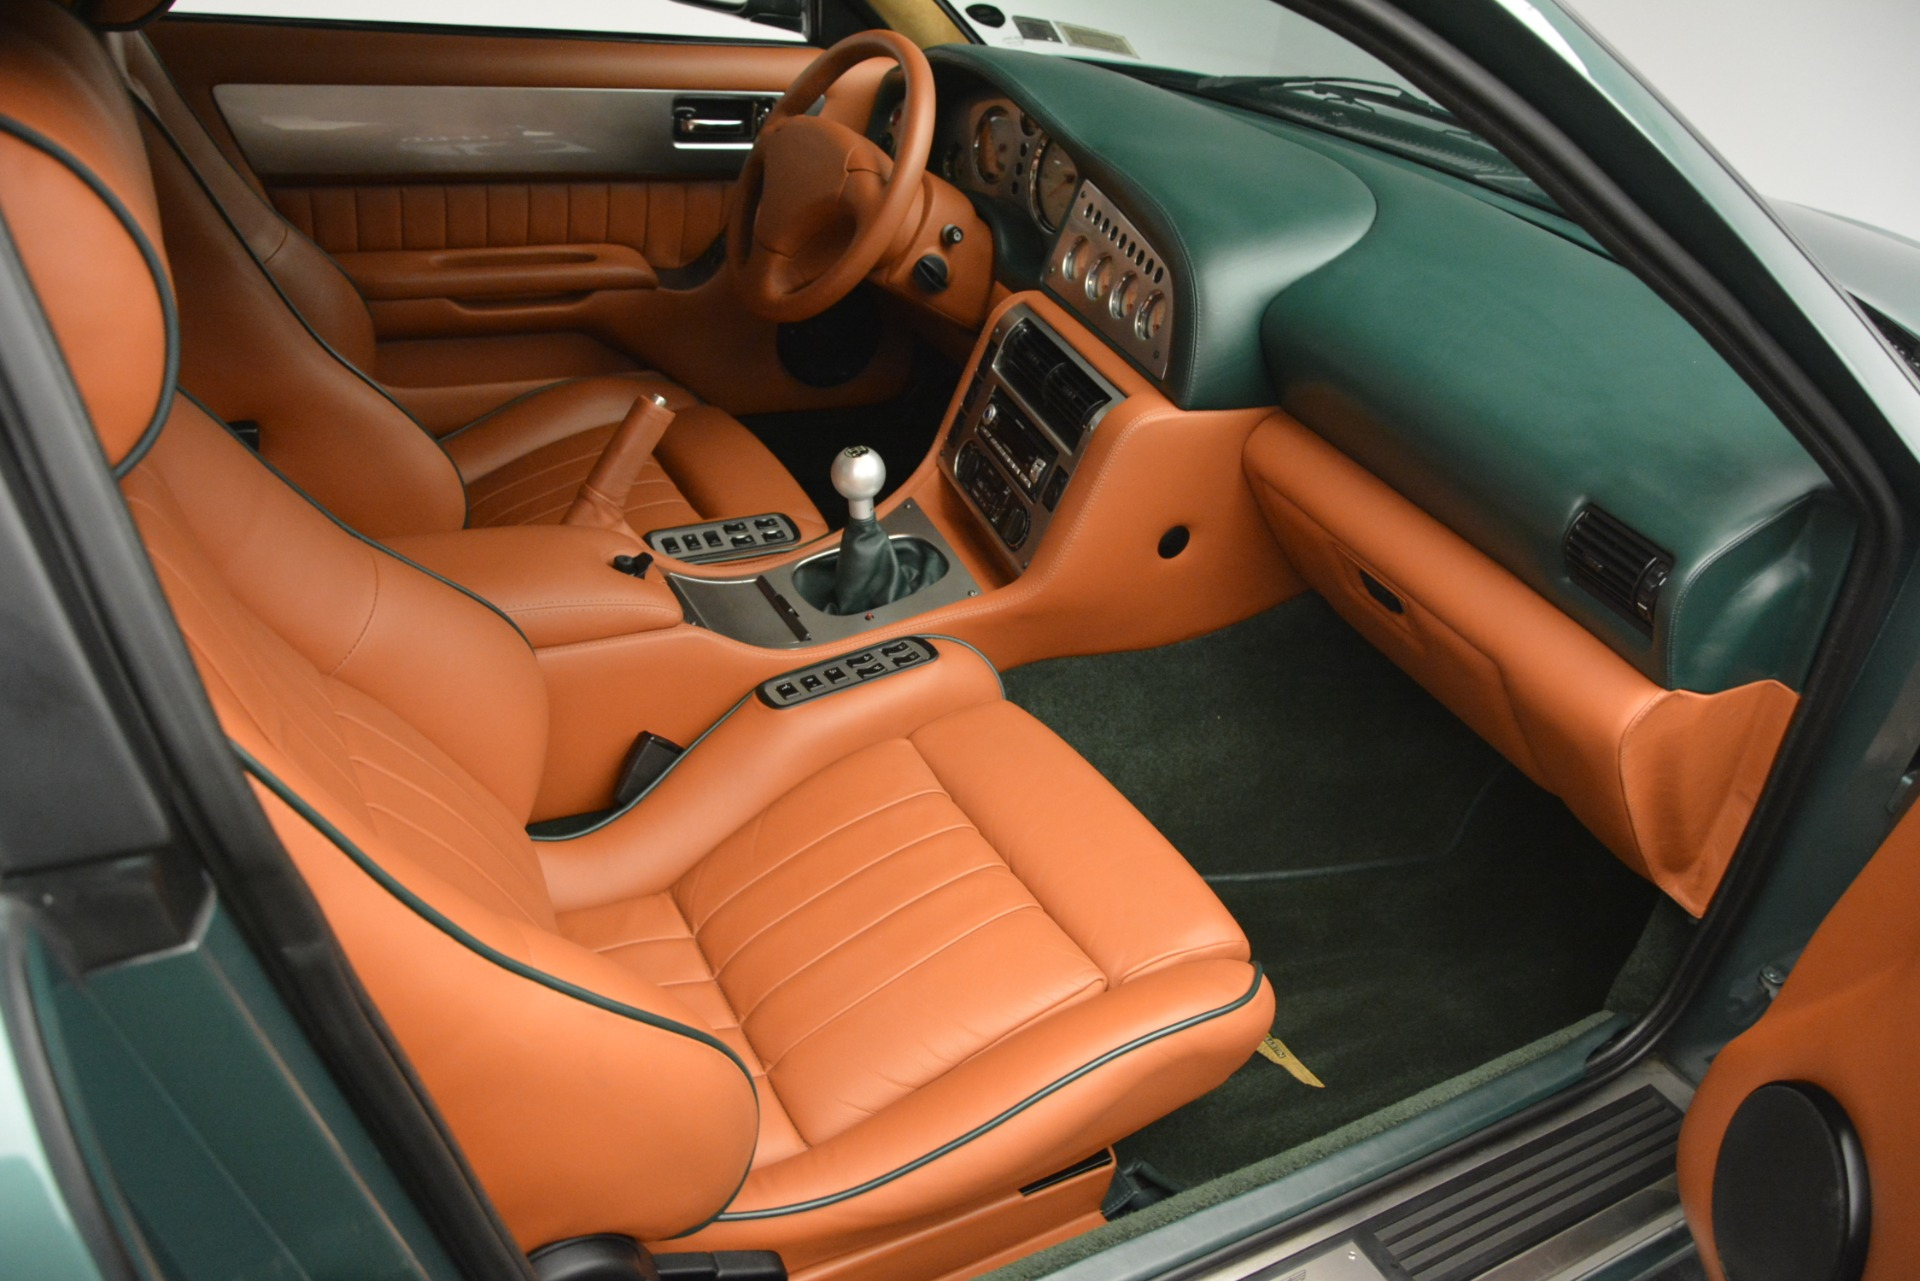 Used 1999 Aston Martin V8 Vantage Le Mans V600 Coupe For Sale 650000 In Greenwich, CT